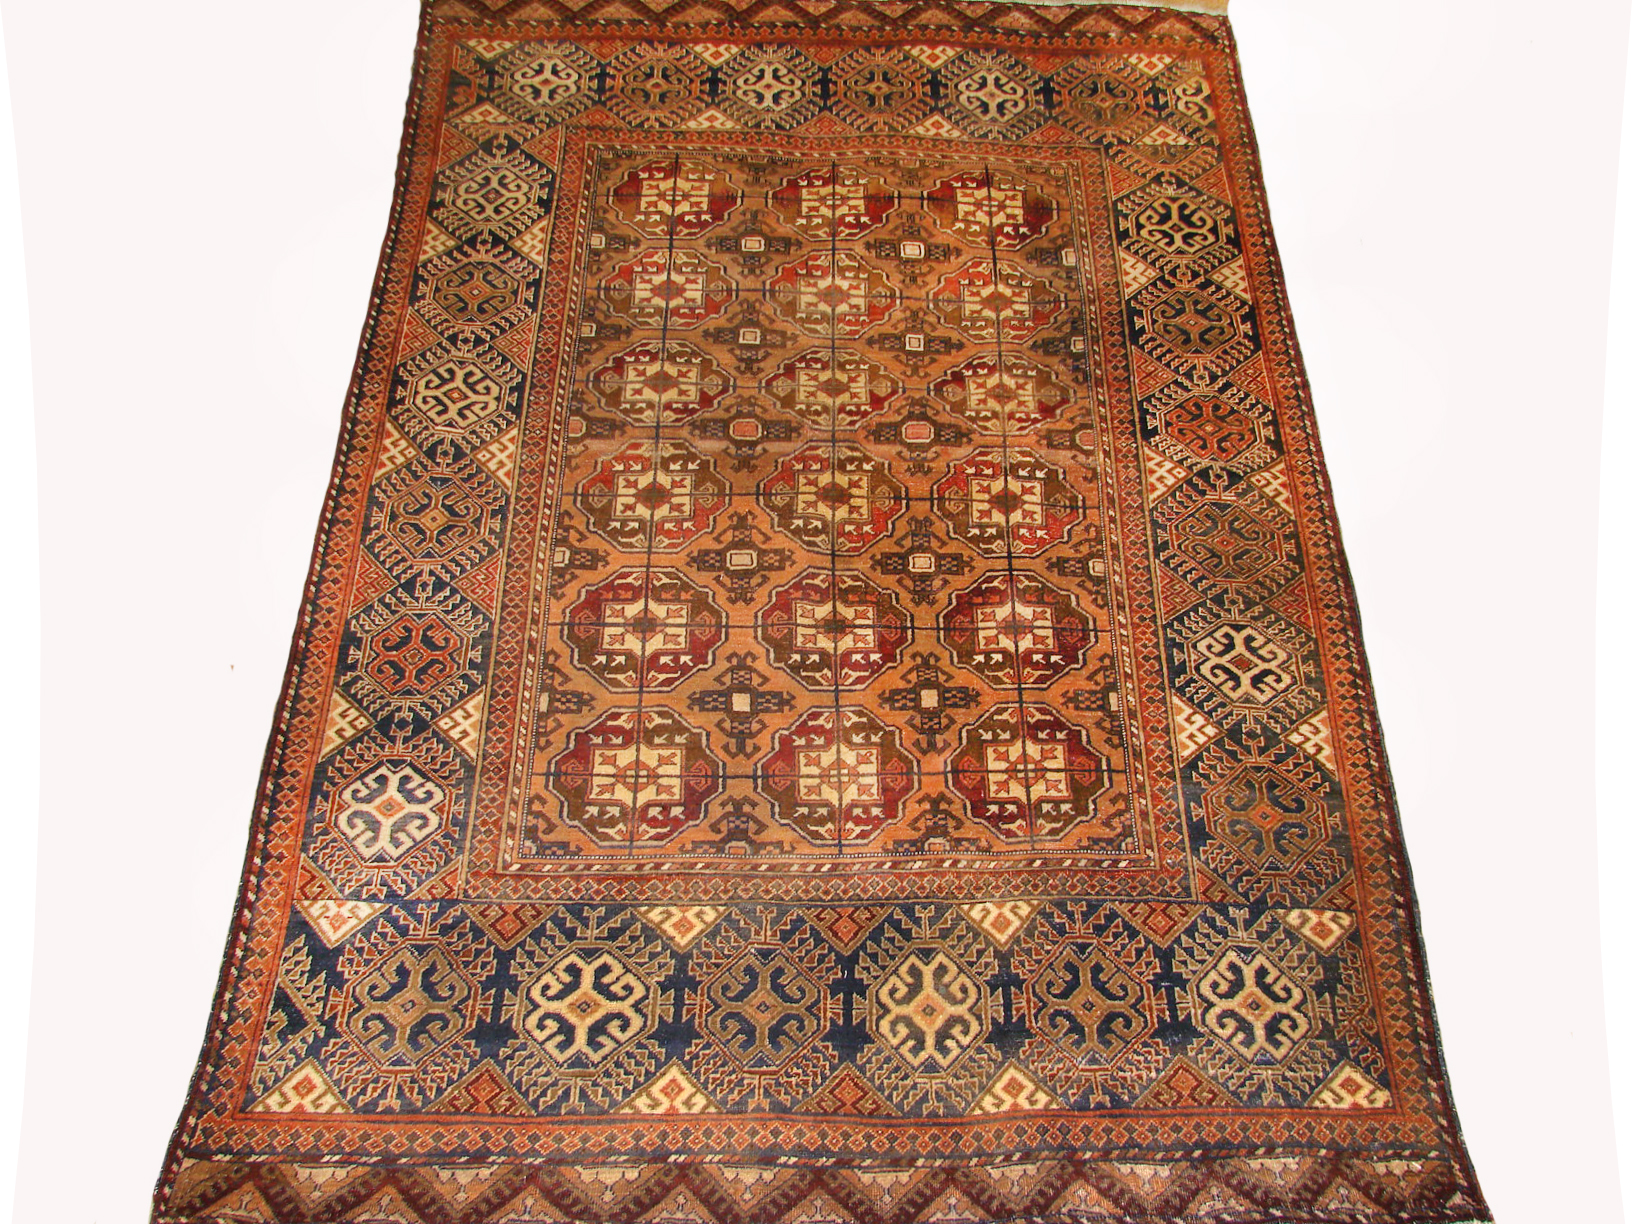 4x6 Bokhara Hand Knotted Wool Area Rug - MR19440